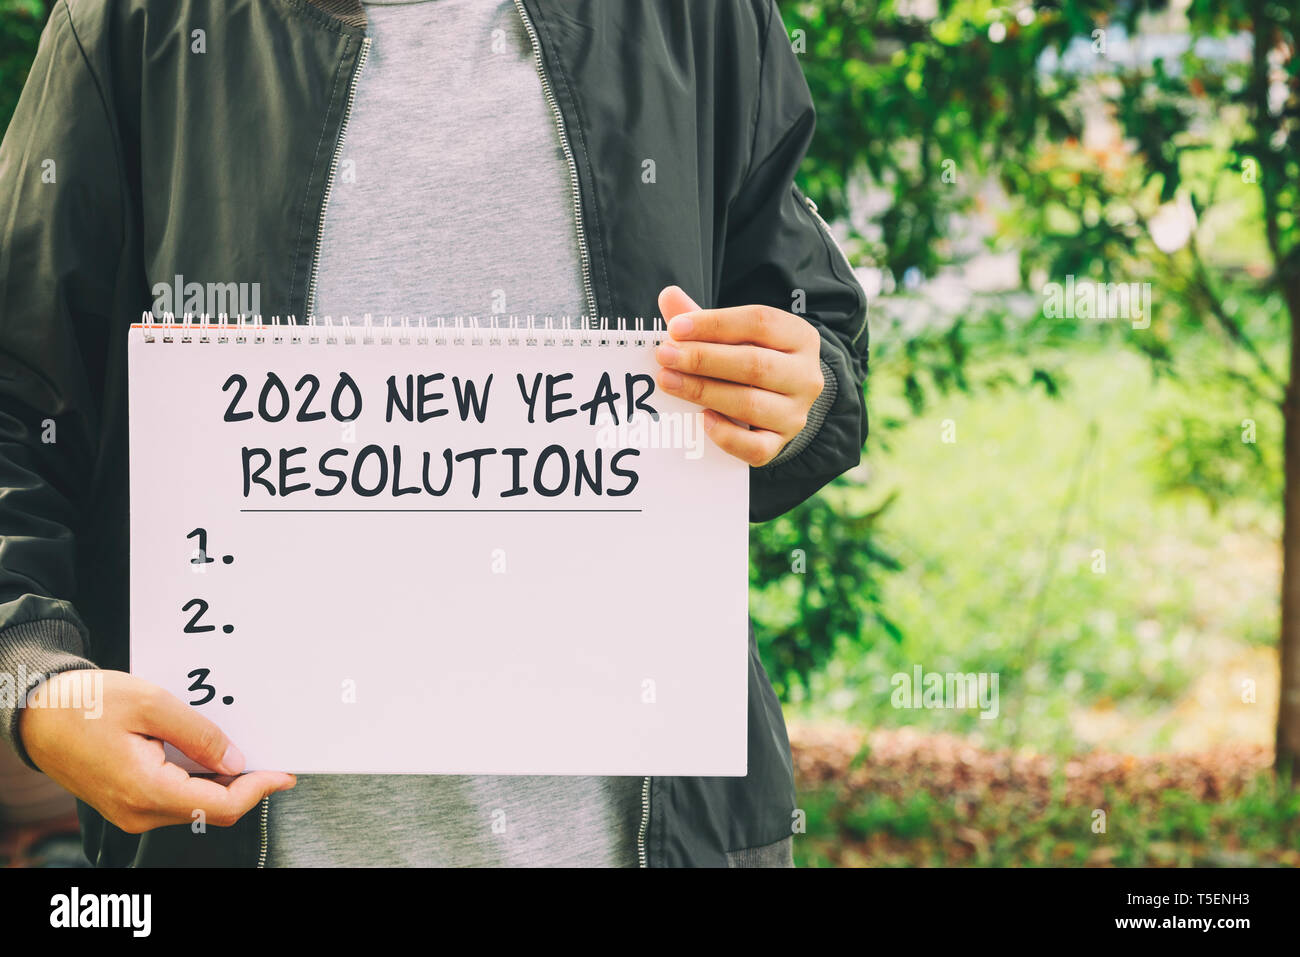 New Years Resolution 2020.Year 2020 New Year Resolution Conceptual Image Stock Photo